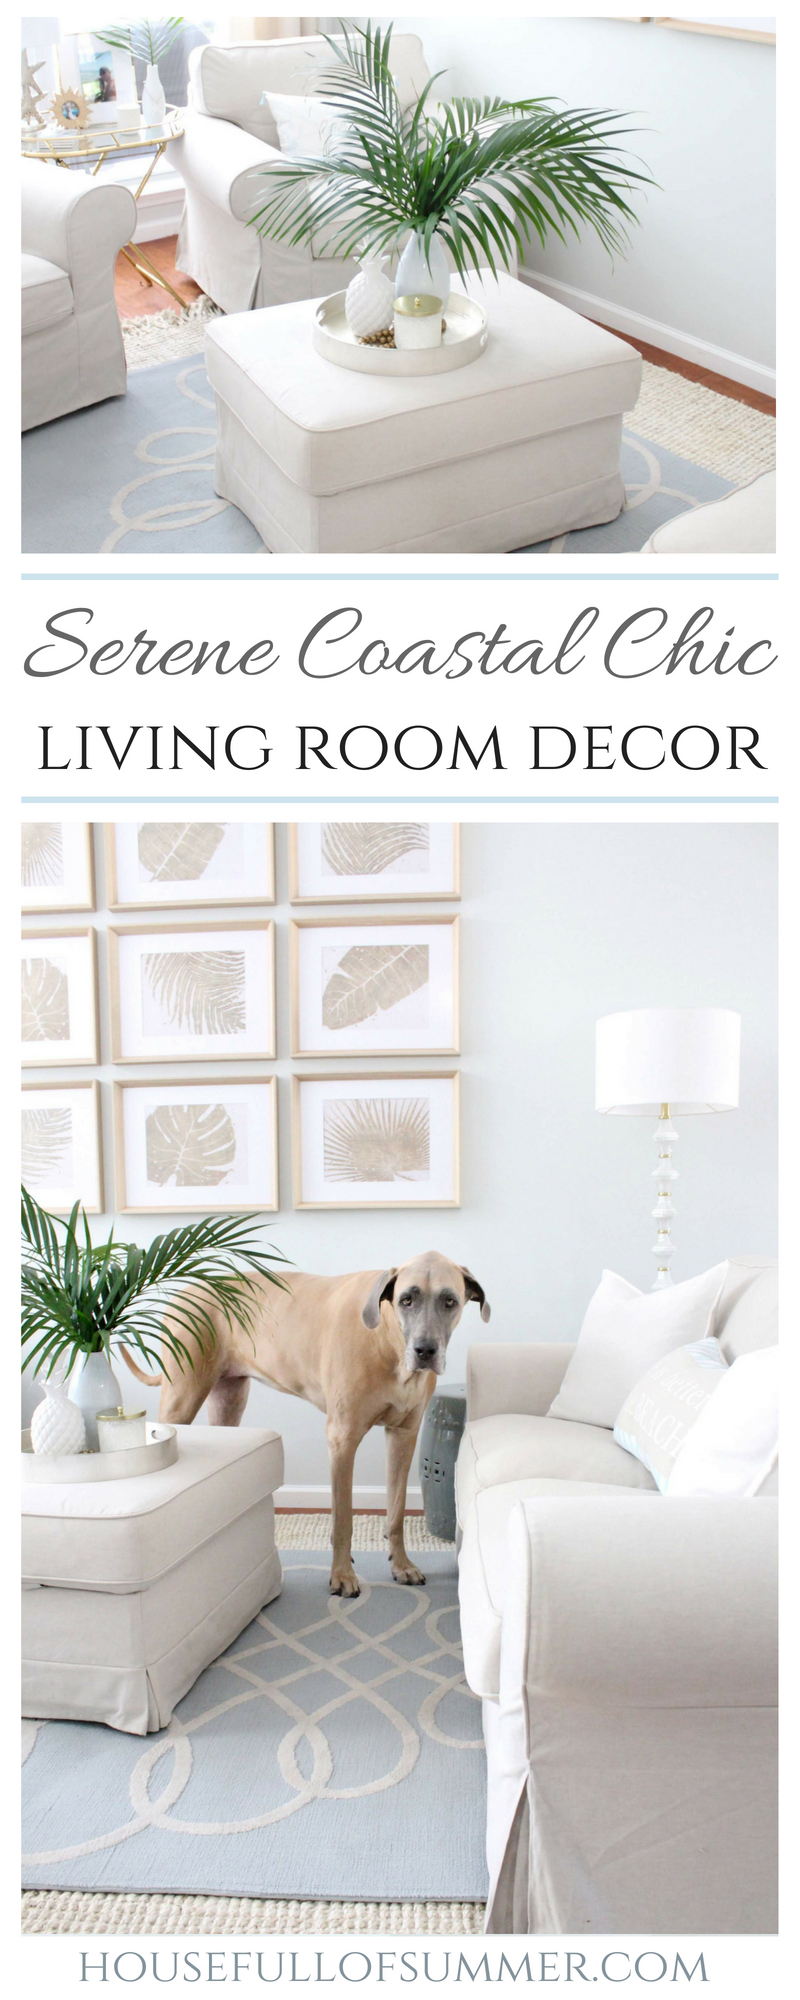 Serene Coastal Chic Living Room Decor | House Full of Summer coastal home interior, Palm Beach chic style, elegant coastal living room ideas, blue and beige interior, slipcovered furniture, palm fronds, Florida home style, tropical decor, layered rugs, natural rug